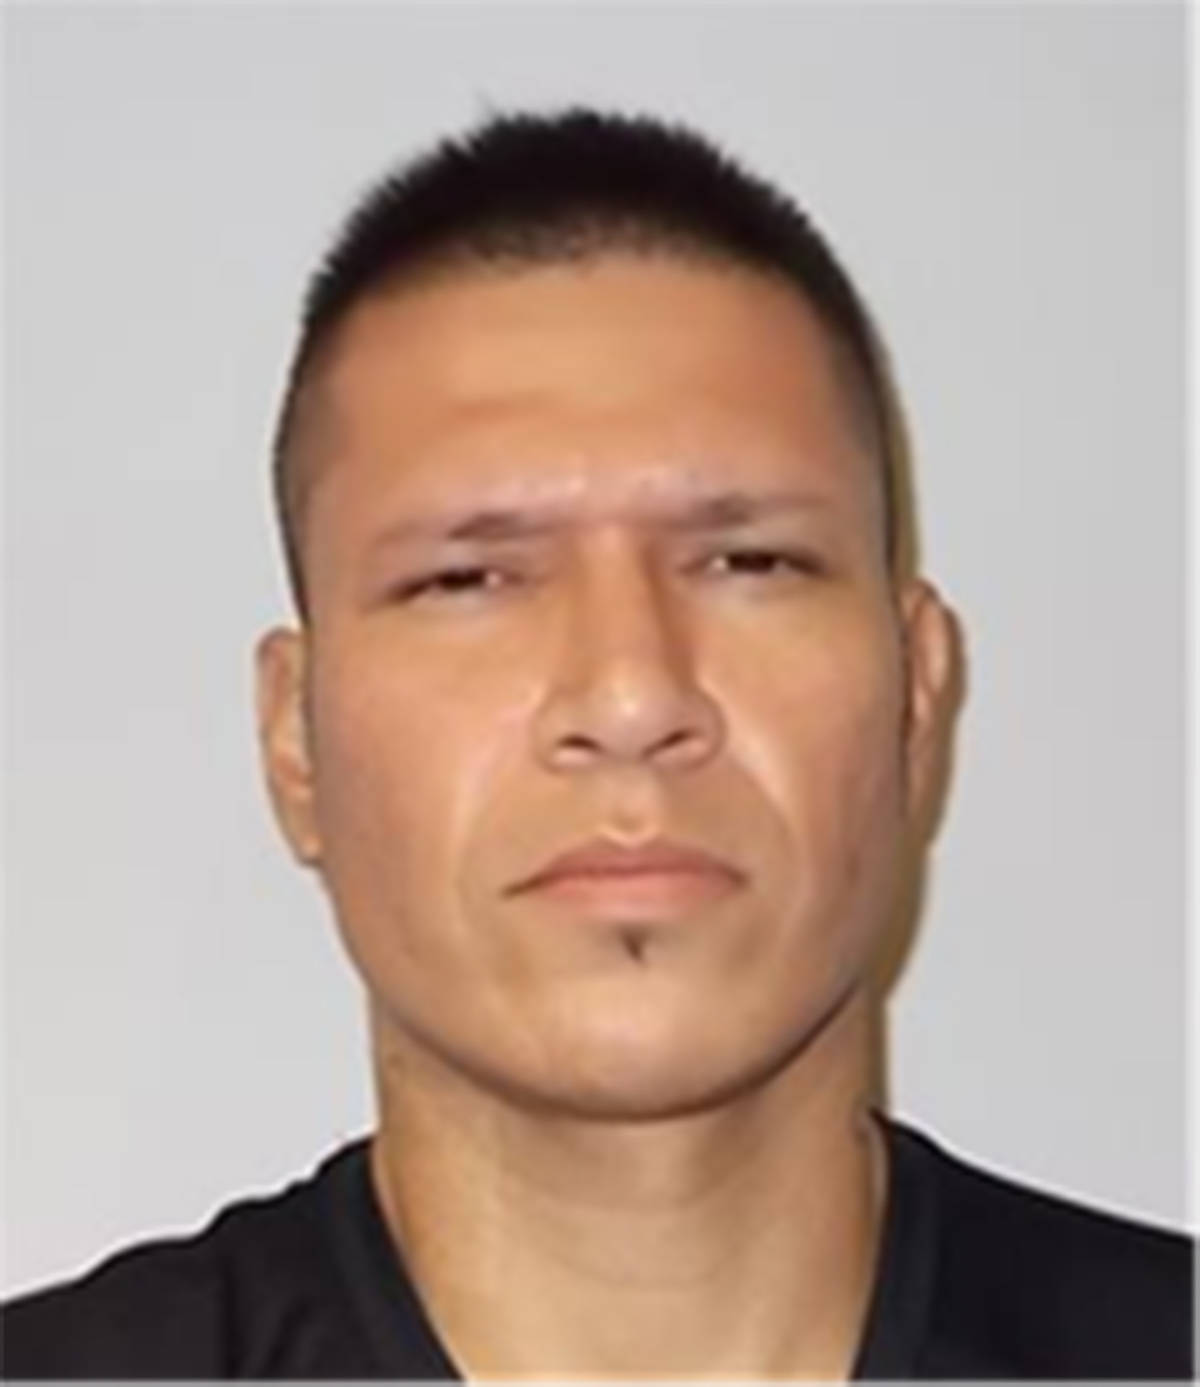 Name: HENDERSON, CoreyAge: 30Height: 6 ftWeight: 189 lbsHair: BlackEyes: BrownWanted: Unlawfully at Large, Possession of Property Obtained by Crime-Over, Operation While Prohibited, Break, Enter and Commit (x2), Mischief, Fail to Comply with Conditions of Undertaking/Recognizance.Warrant in effect: October 11, 2020Parole Jurisdiction: Vancouver, B.C.